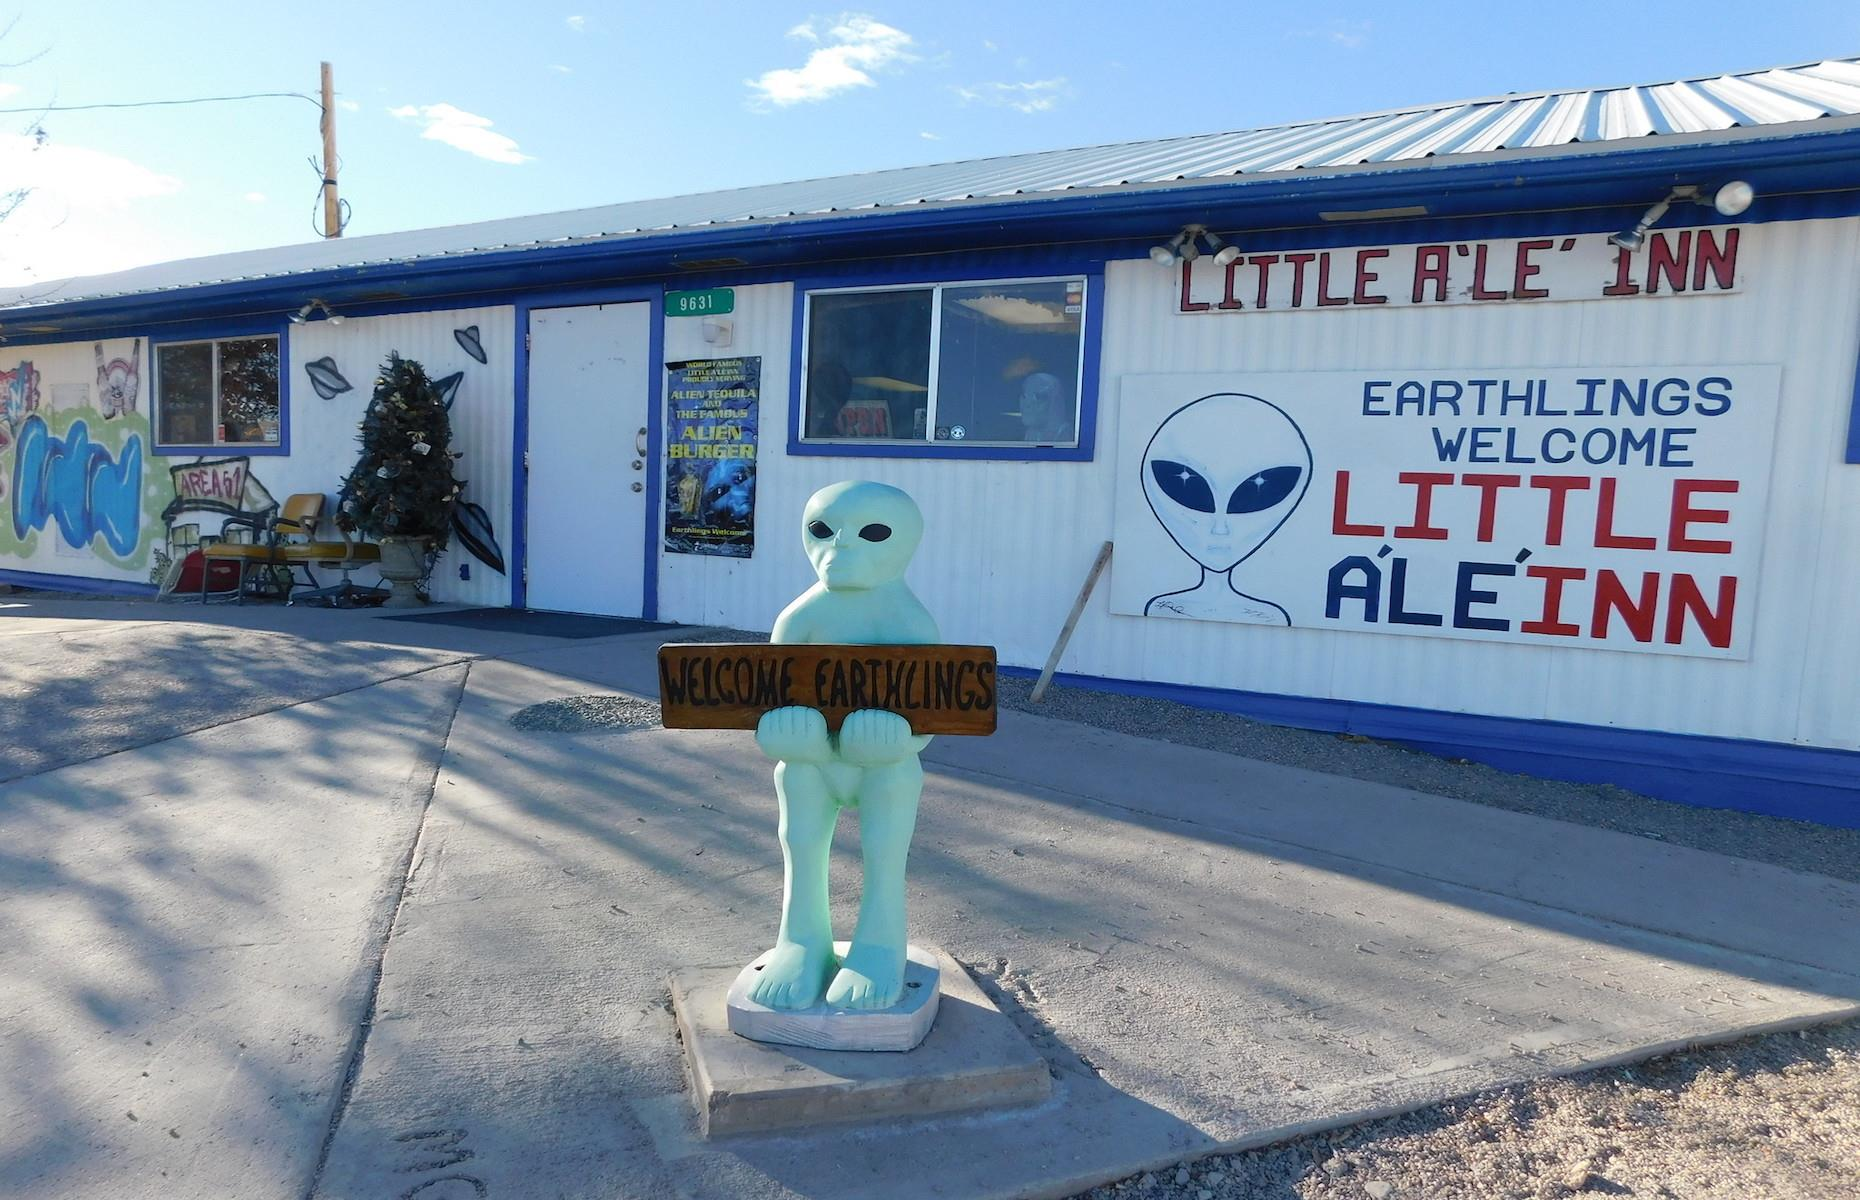 """Slide 10 of 51: The small nearby town of Rachel on the so called """"Extraterrestrial Highway"""" is a key tourist attraction. A popular stopover among UFO hunters isthe alien-themed restaurant Little A'Le'Inn (pictured)."""